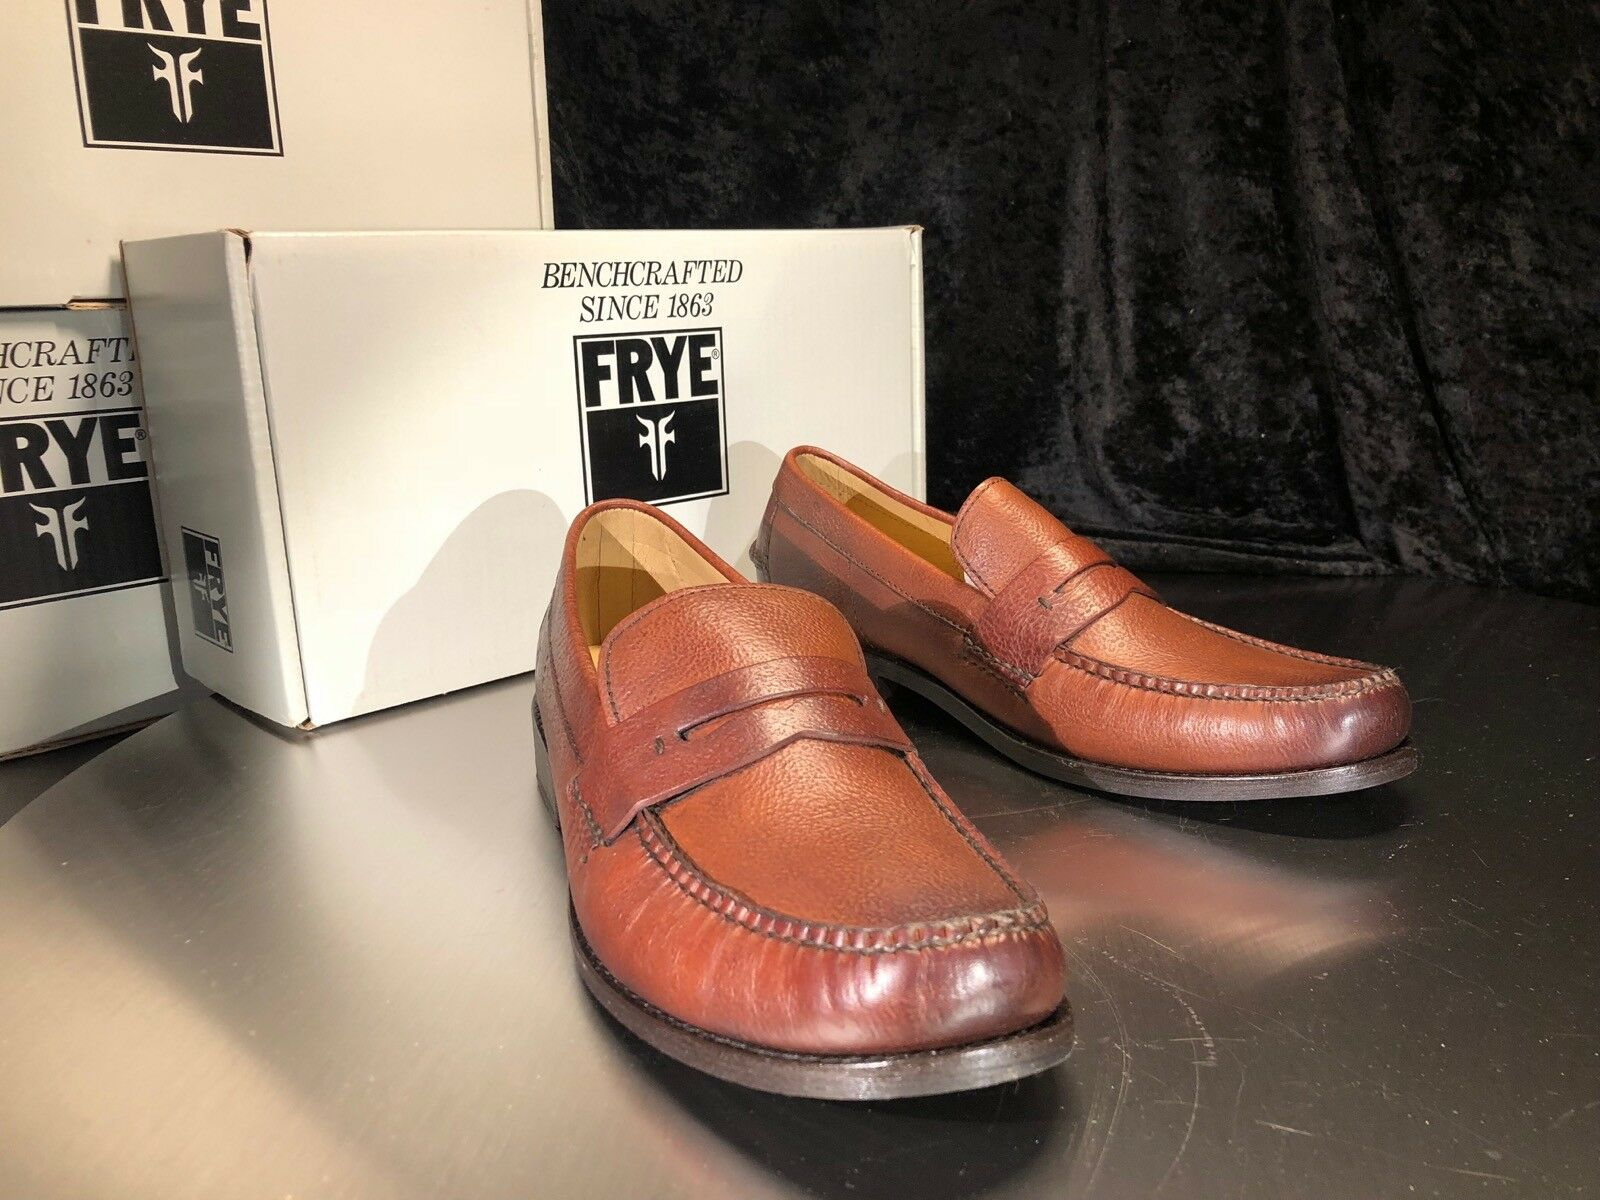 FRYE Douglas Penny Hammered Whiskey Brown Leather Loafers shoes 87587 3487587 WHS